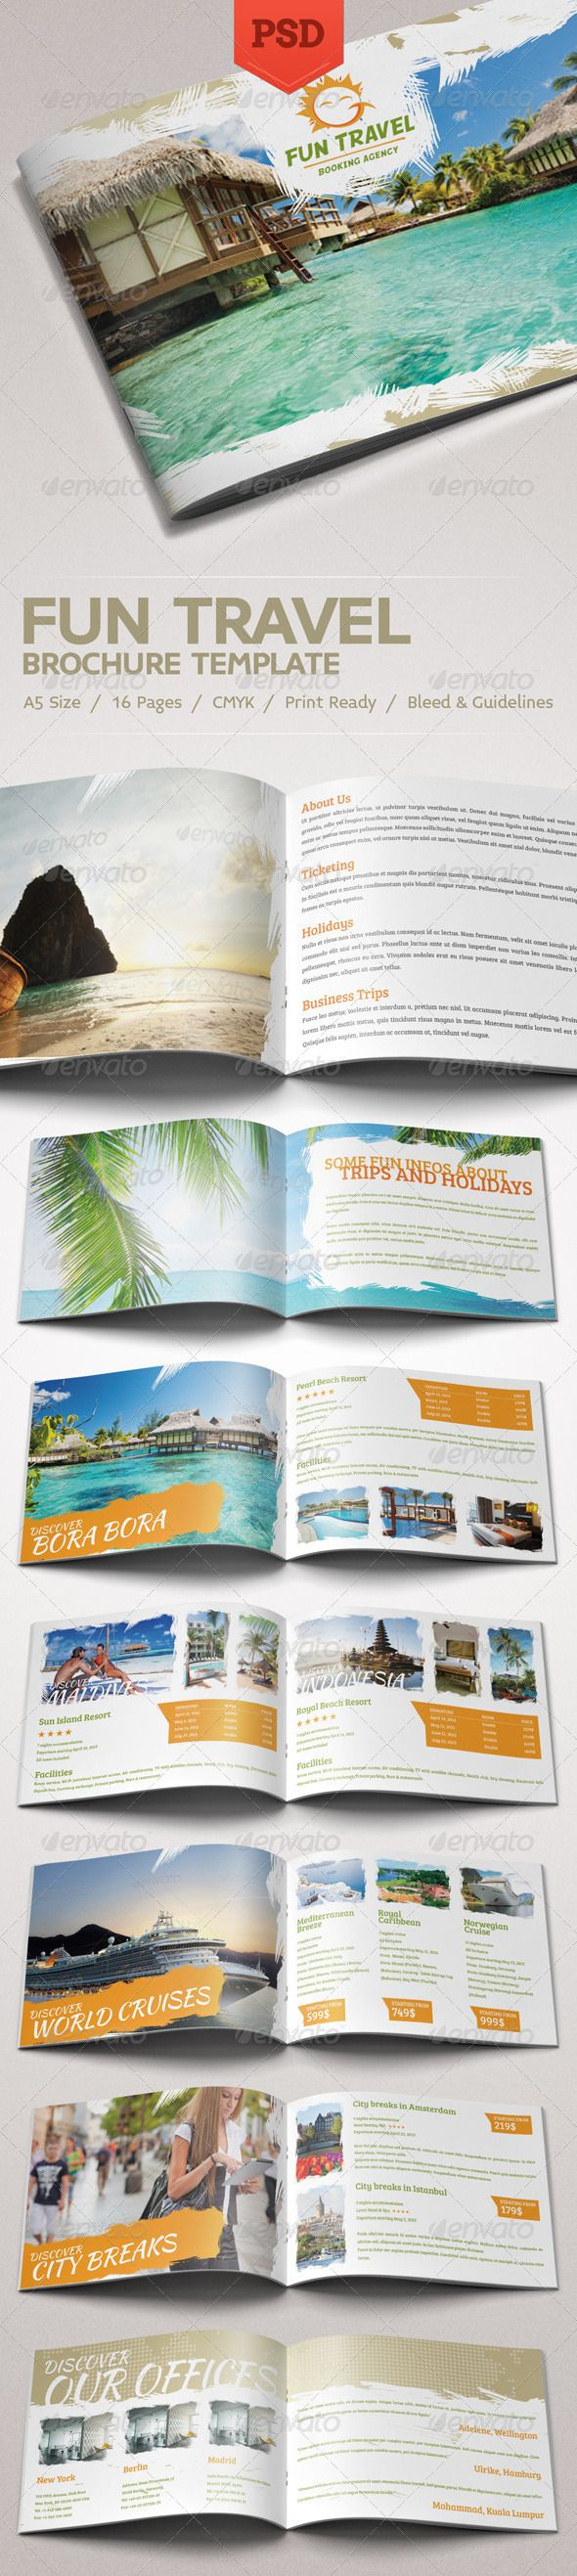 PSD Fun Travel Brochure Template • Only available here ➝ http://graphicriver.net/item/fun-travel-brochure/4438679?ref=pxcr